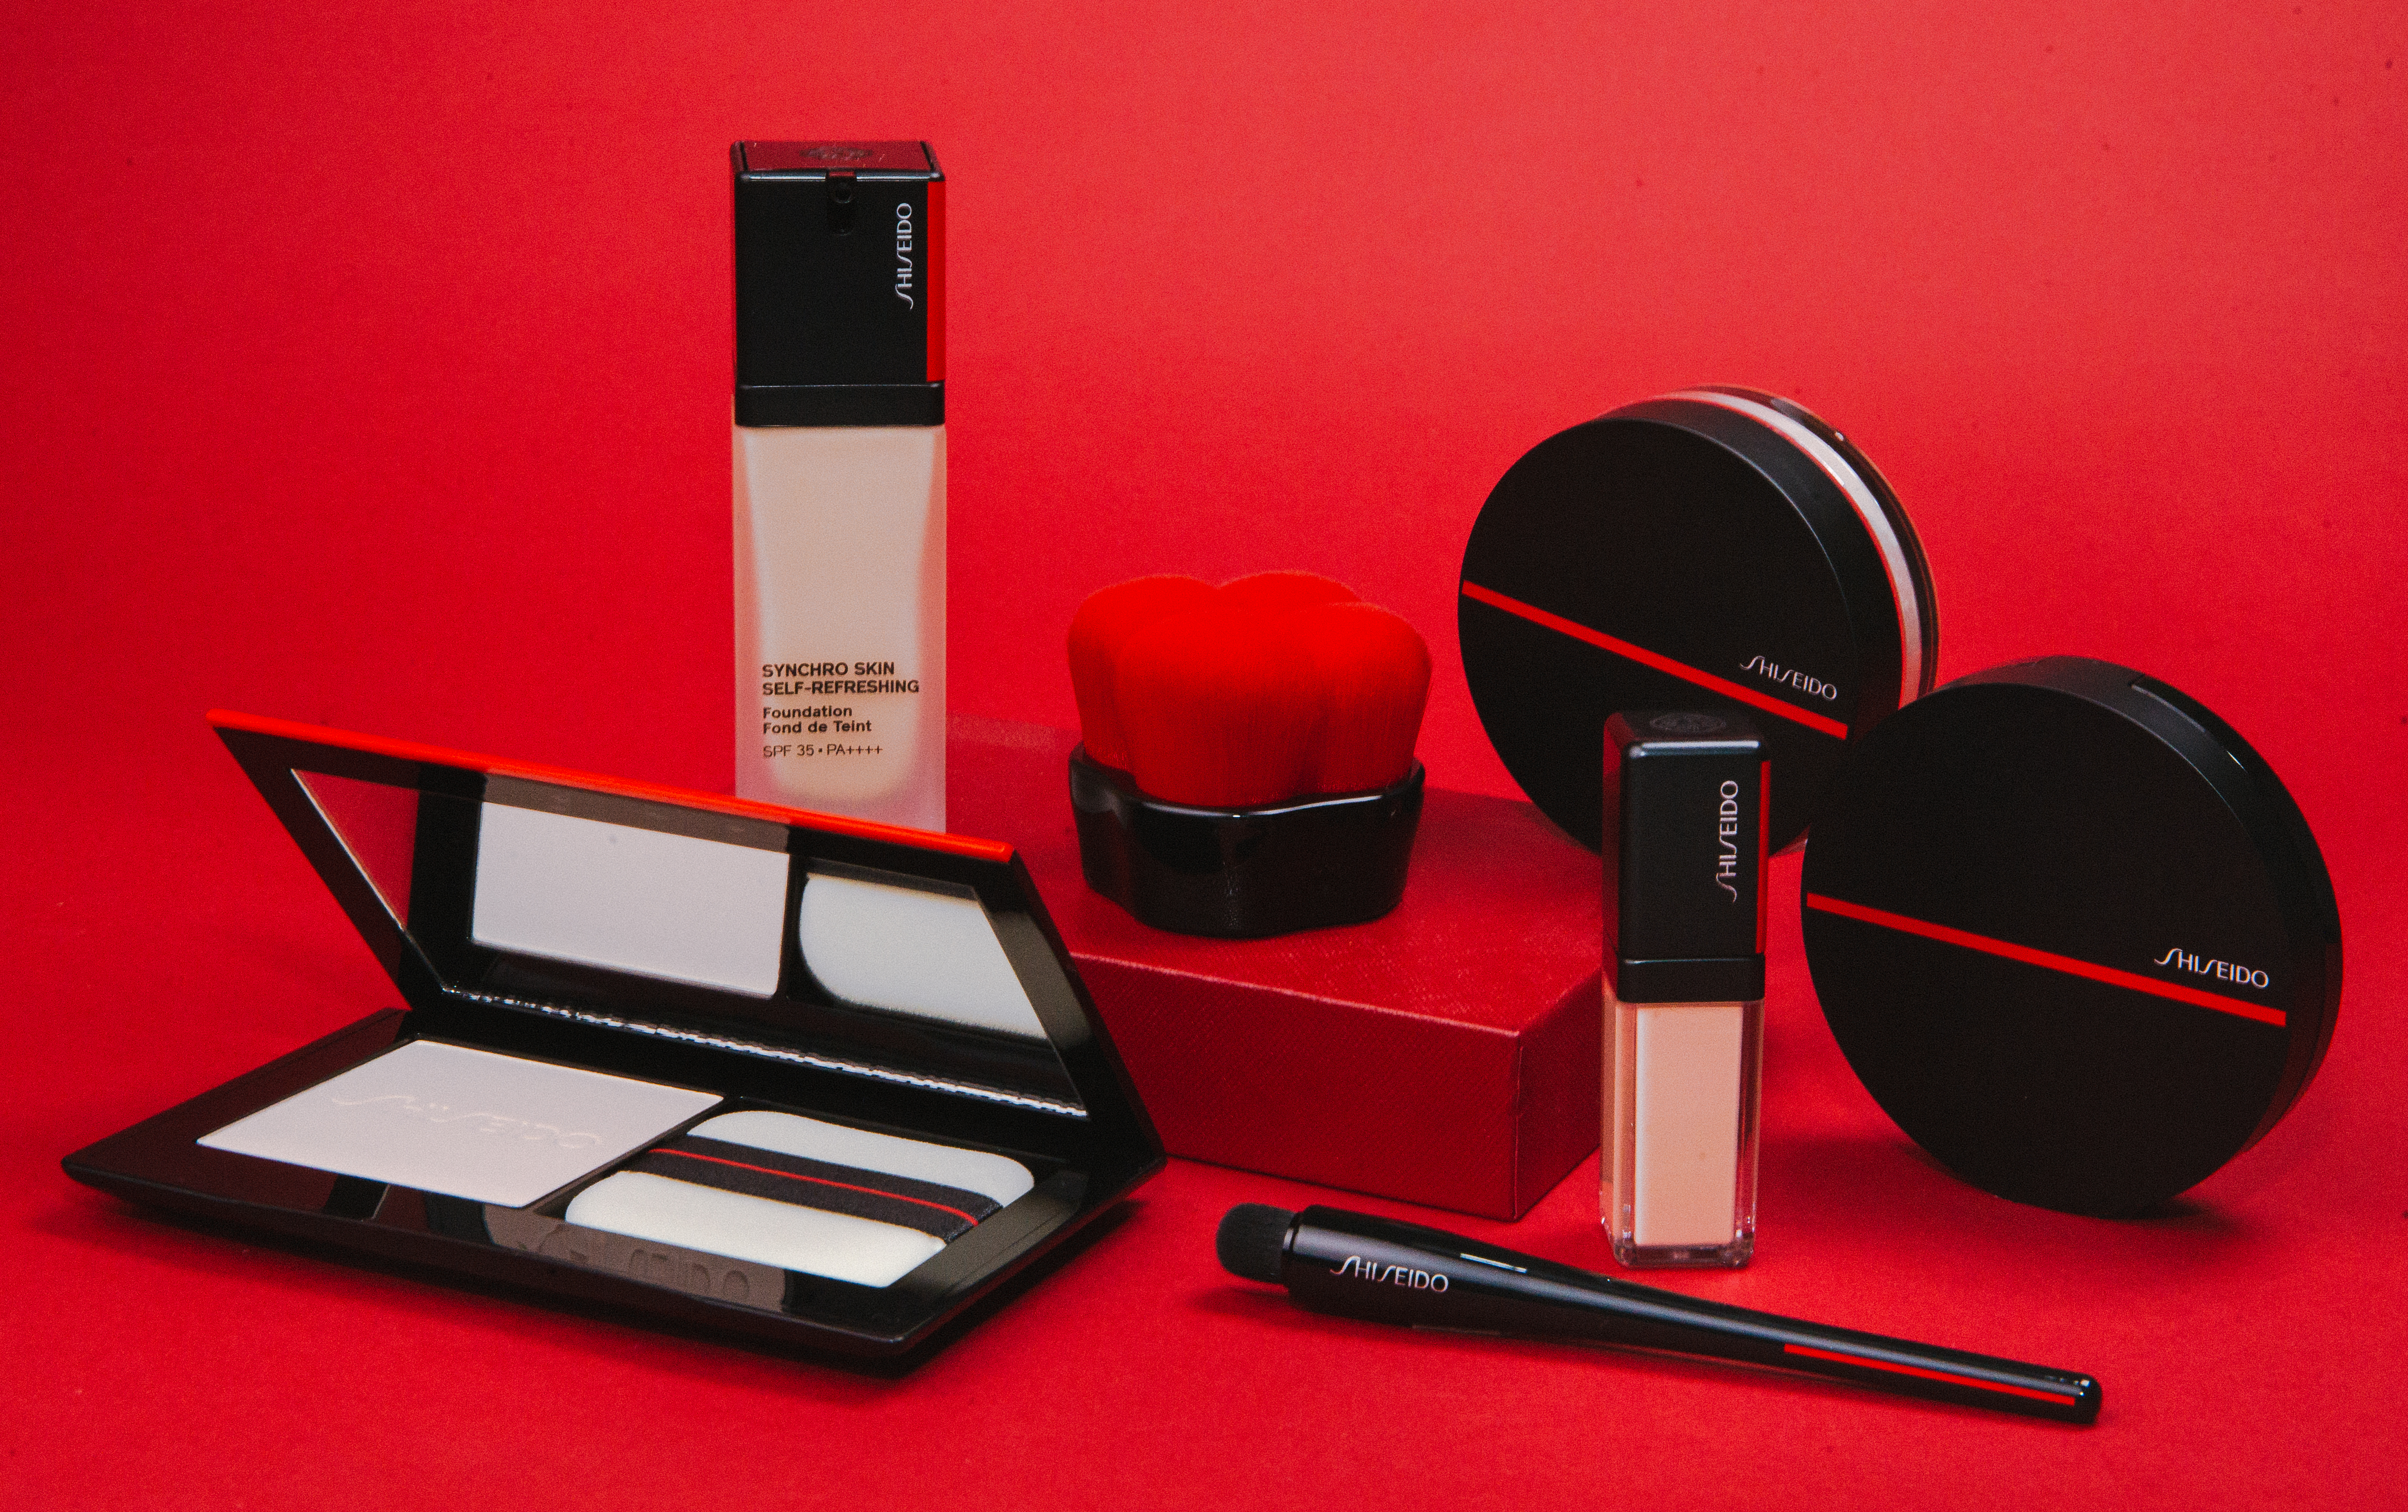 Effortless Brilliance with Shiseido's New Synchro Skin Self-Refreshing Collection